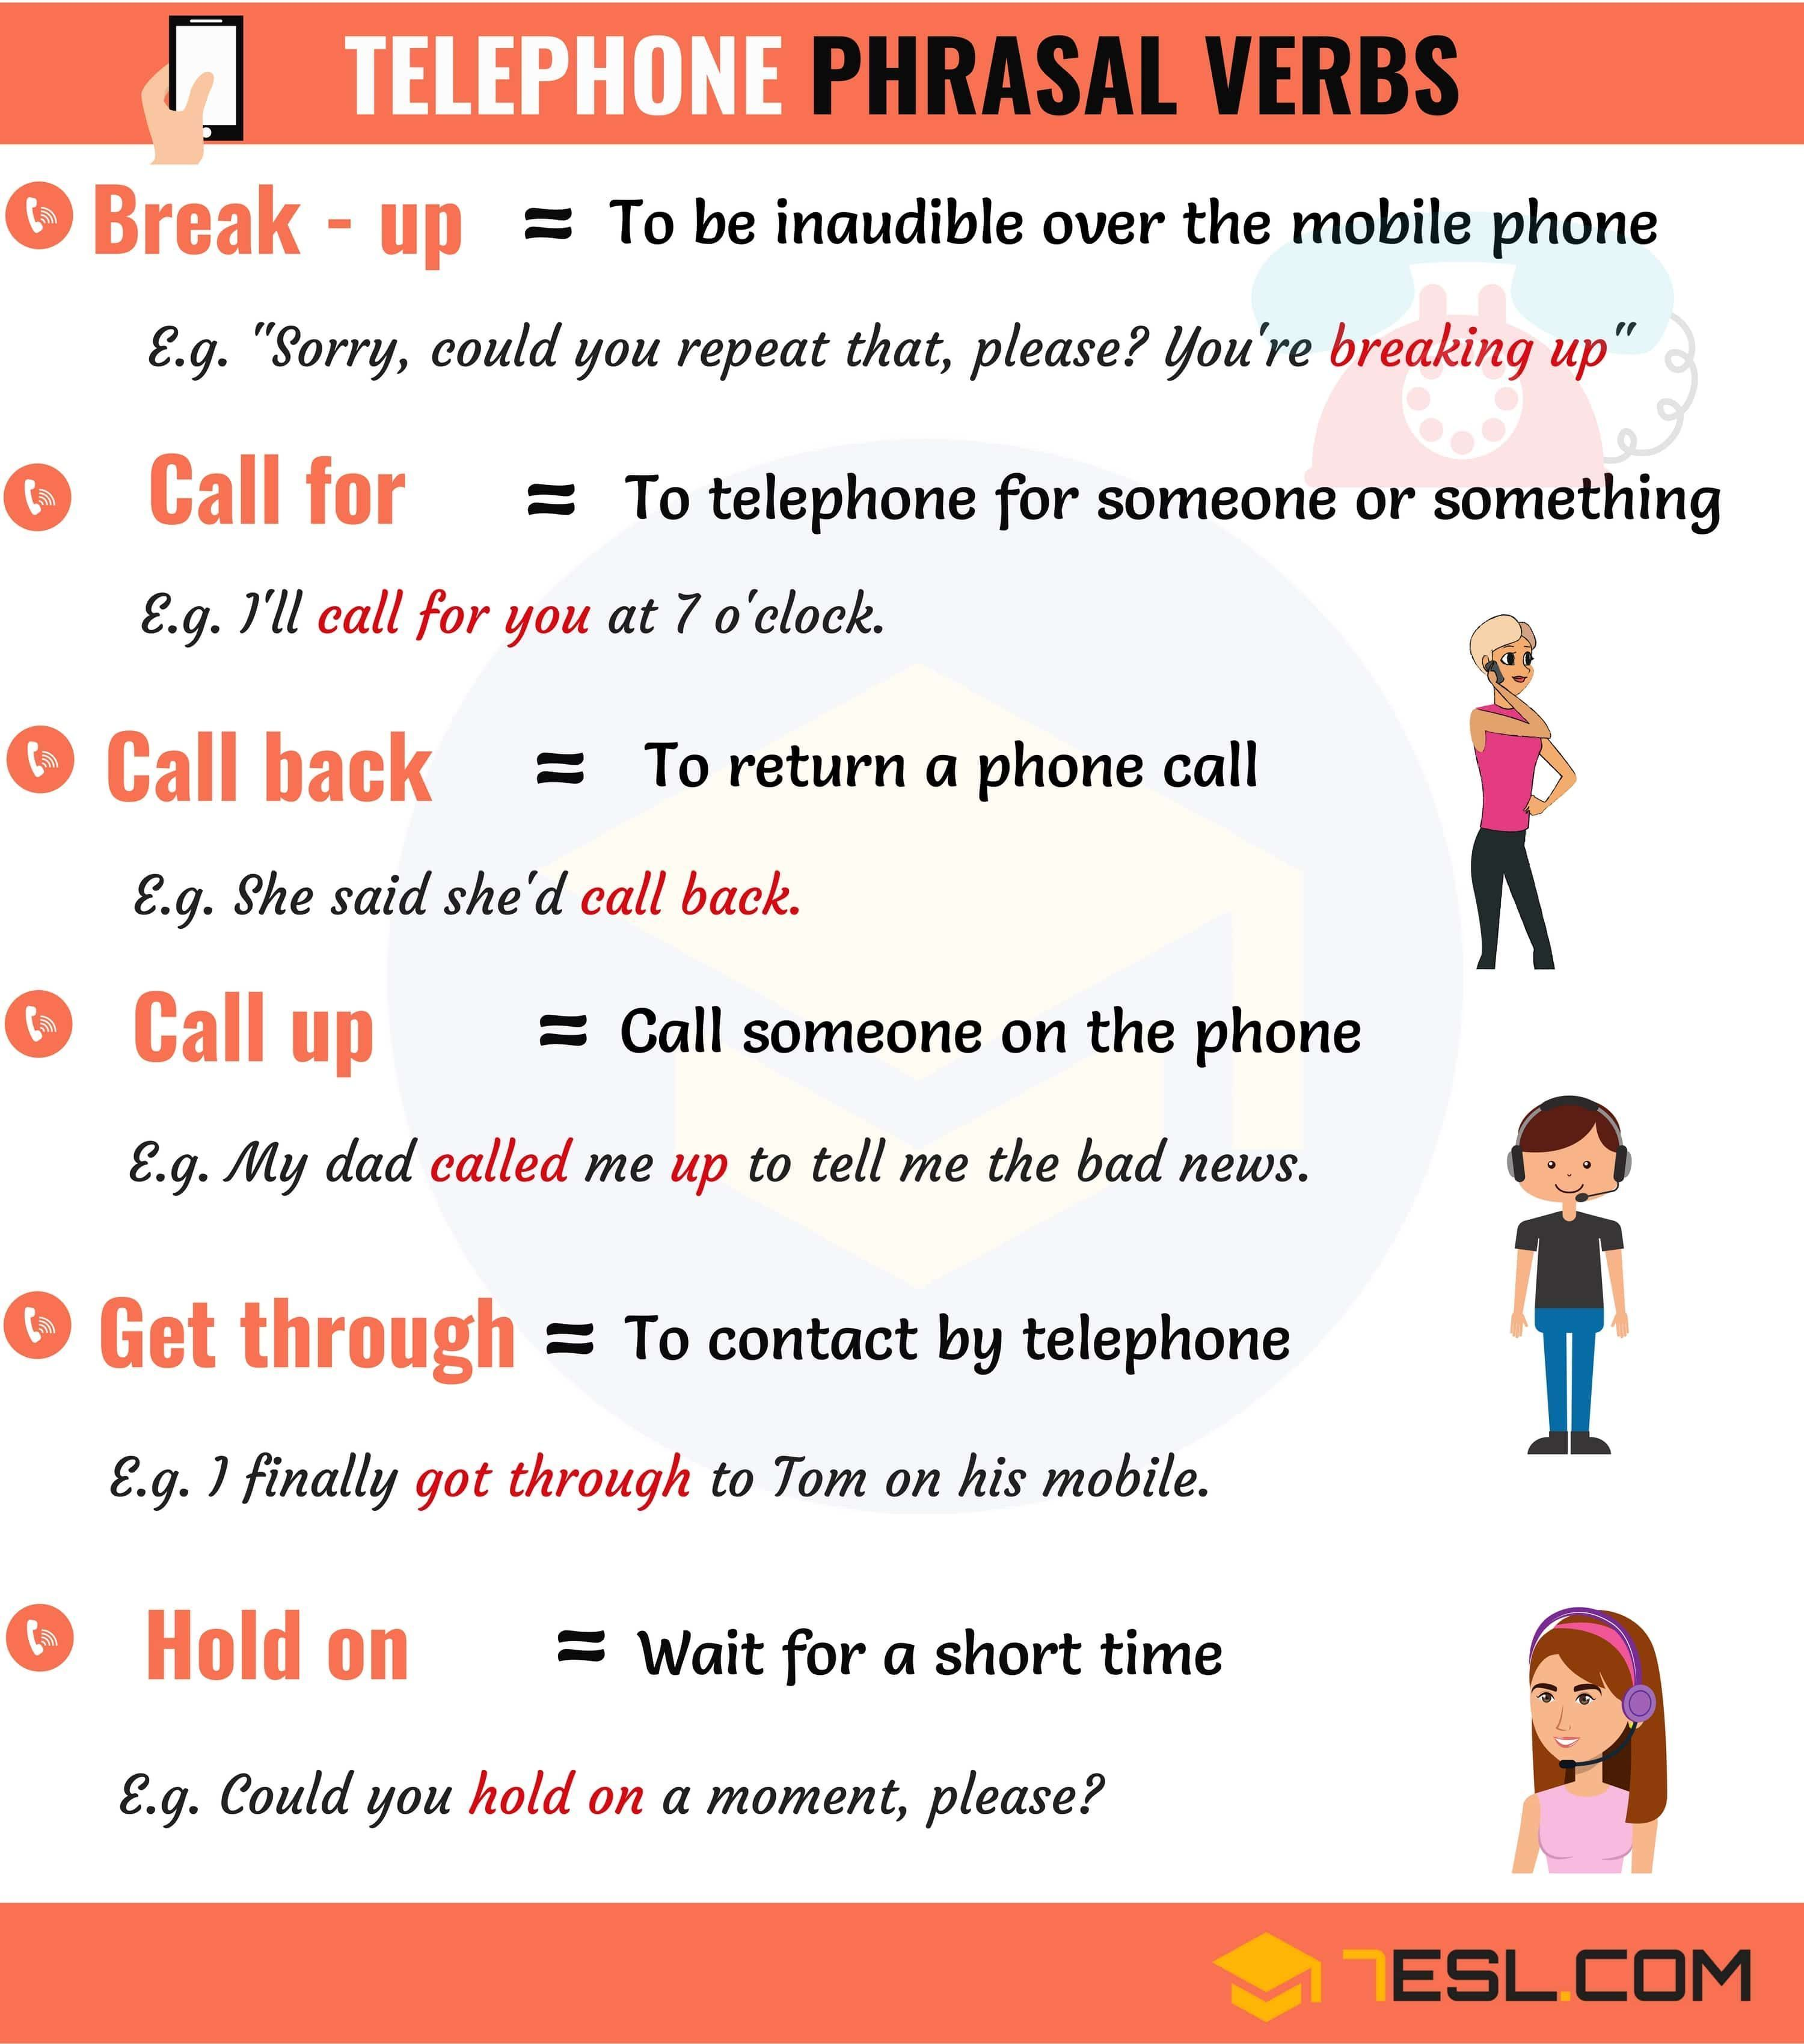 0shares Common Telephone Phrasal Verbs In English With